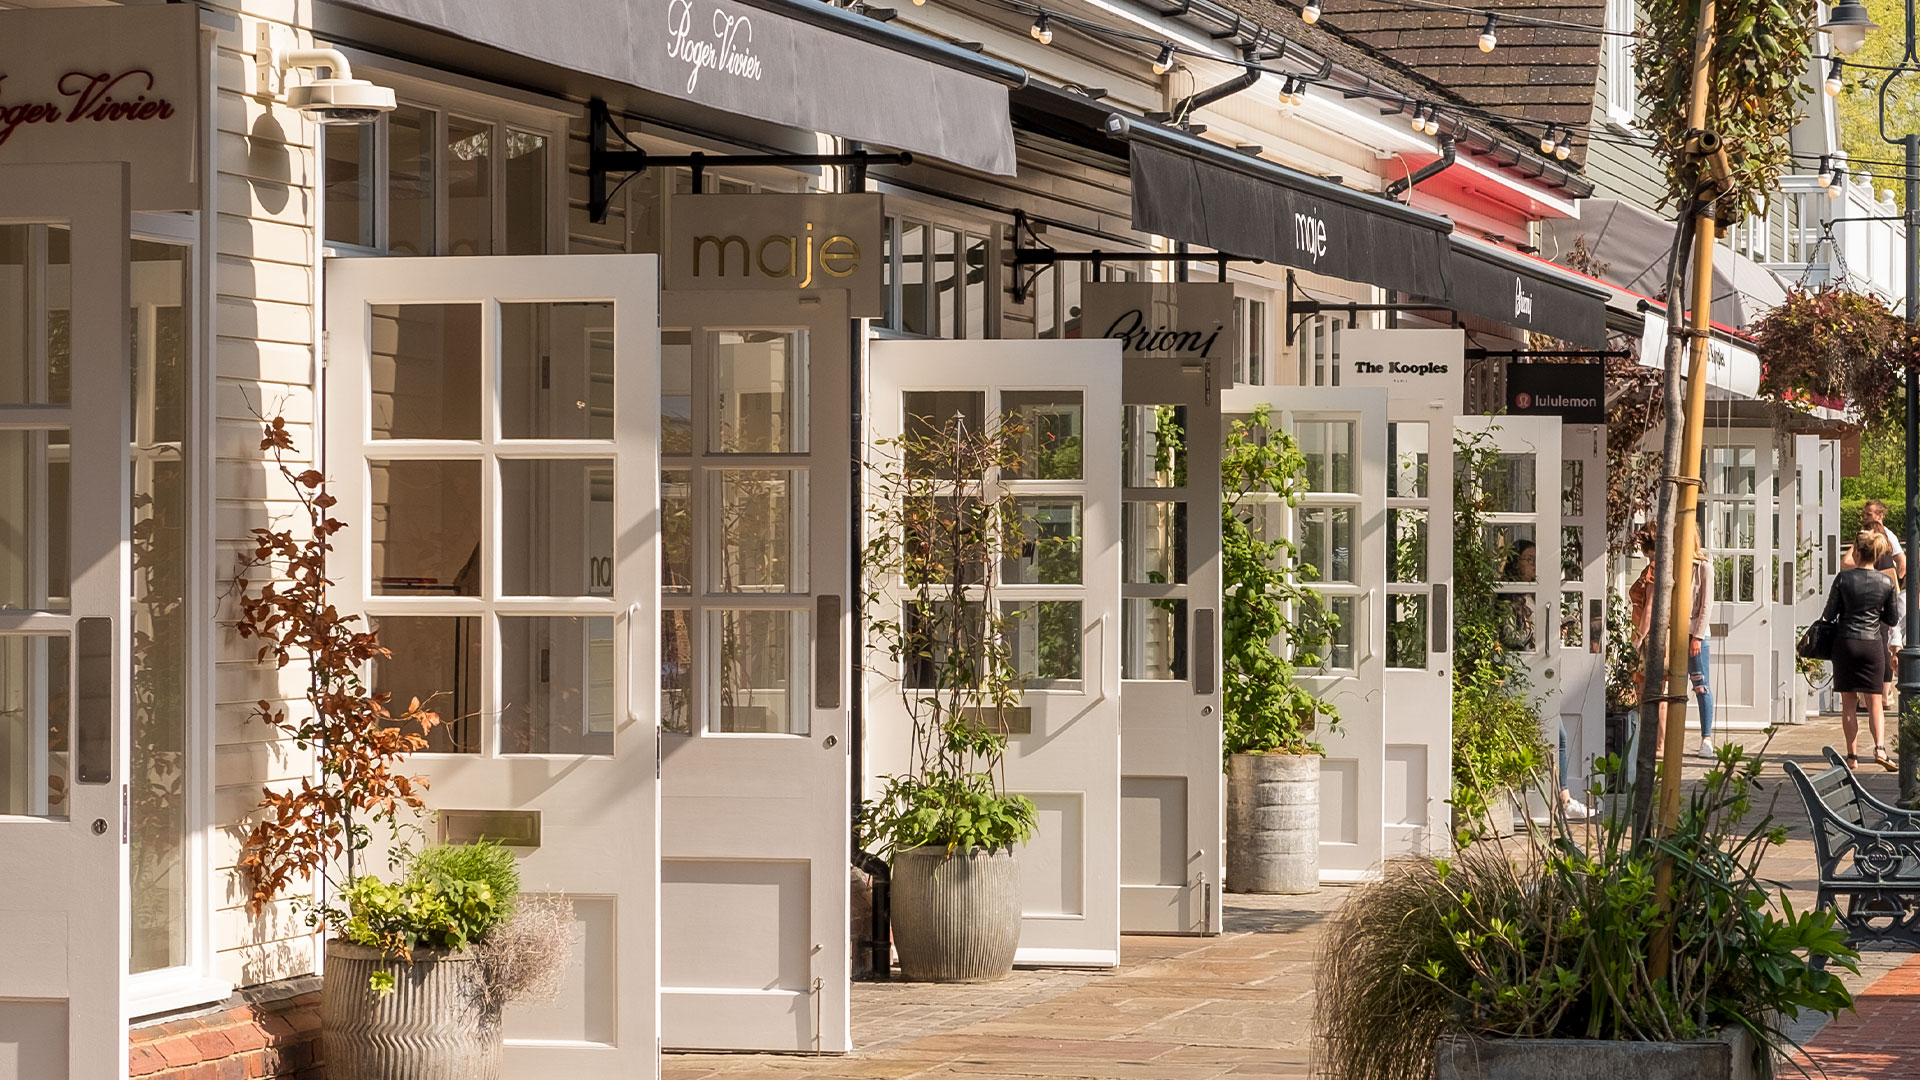 Boutique doors open at Bicester Village